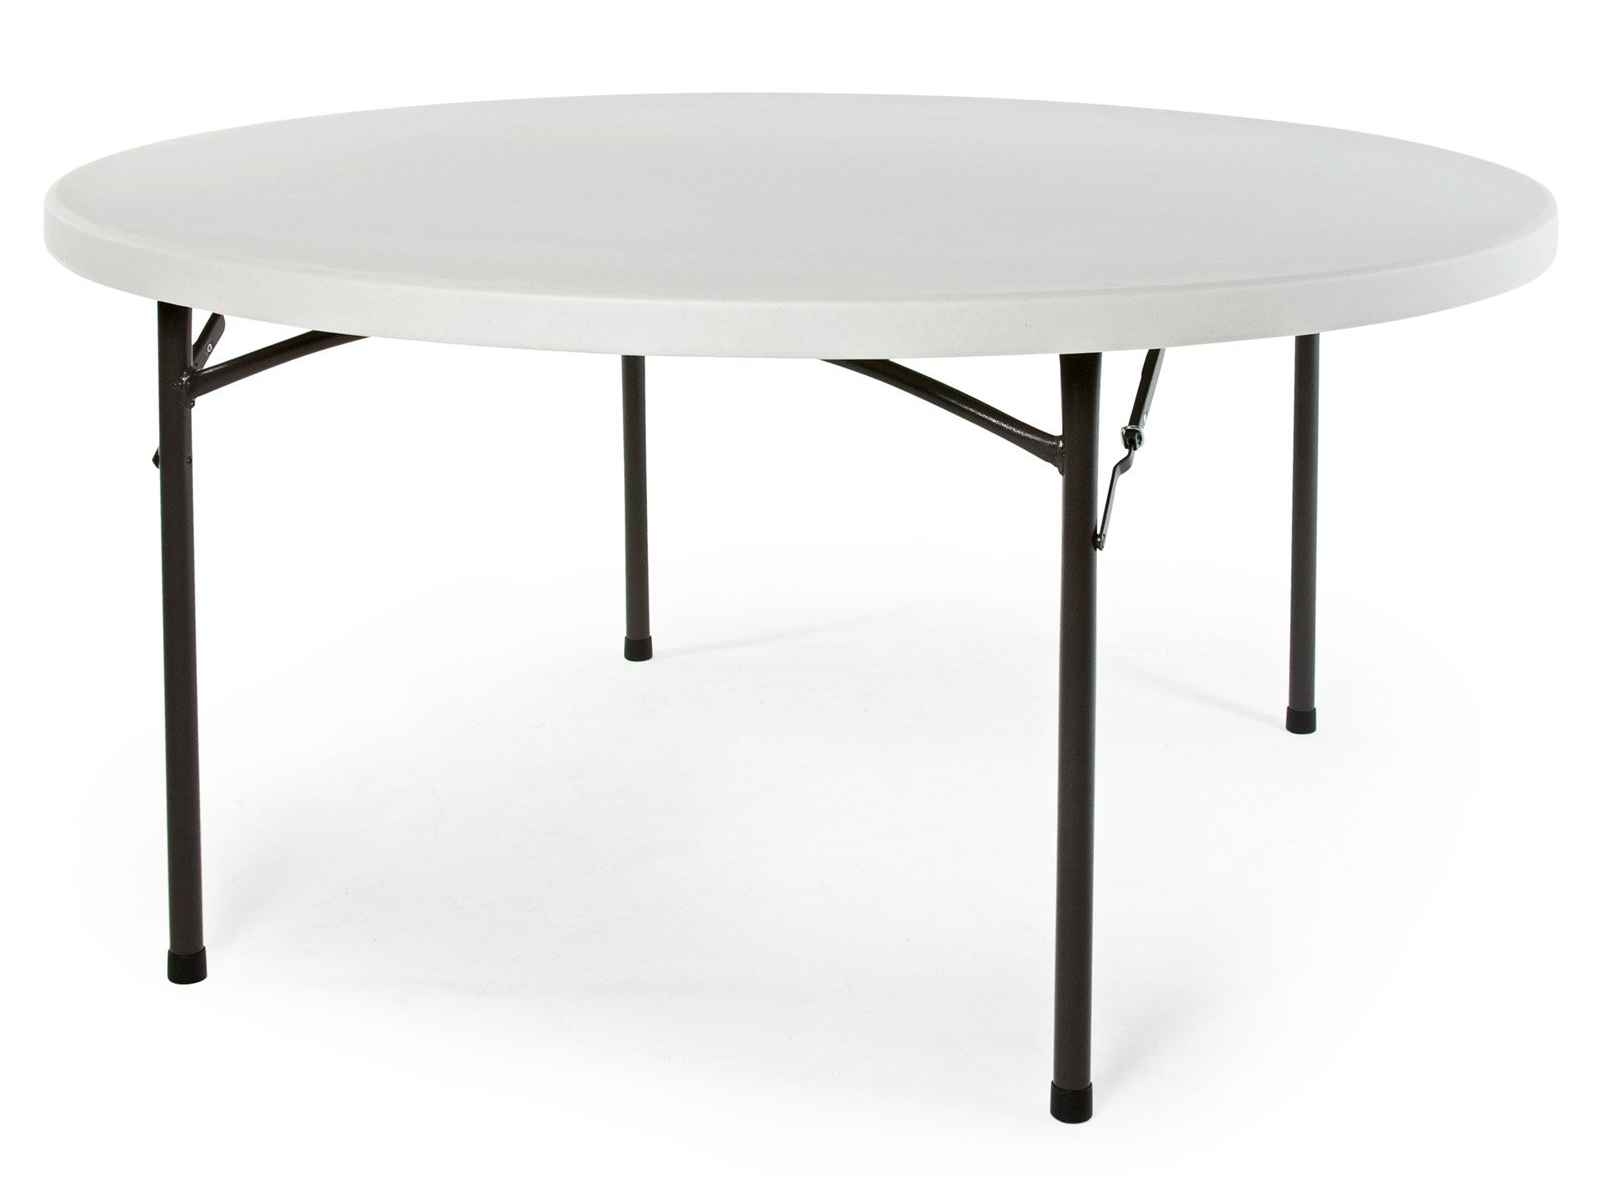 Correll blow molded round folding tables